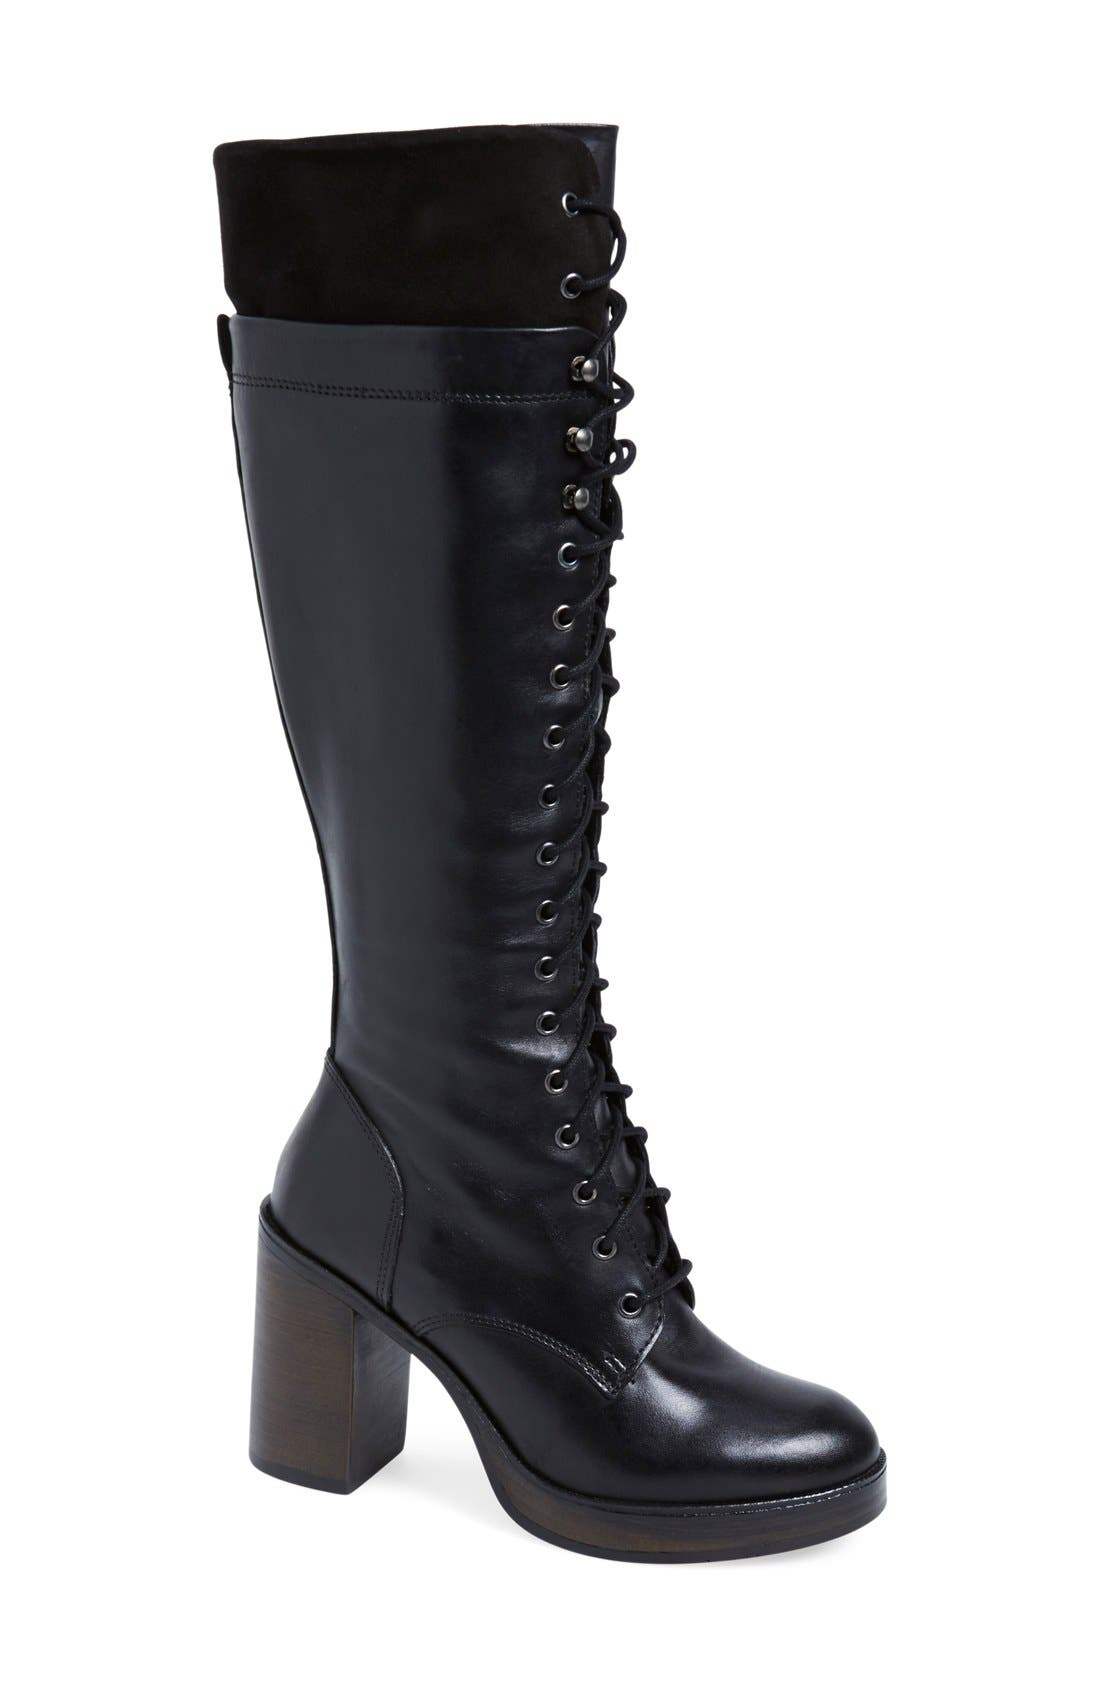 Alternate Image 1 Selected - Steve Madden 'Nitefall' Tall Lace Up Boot (Women)